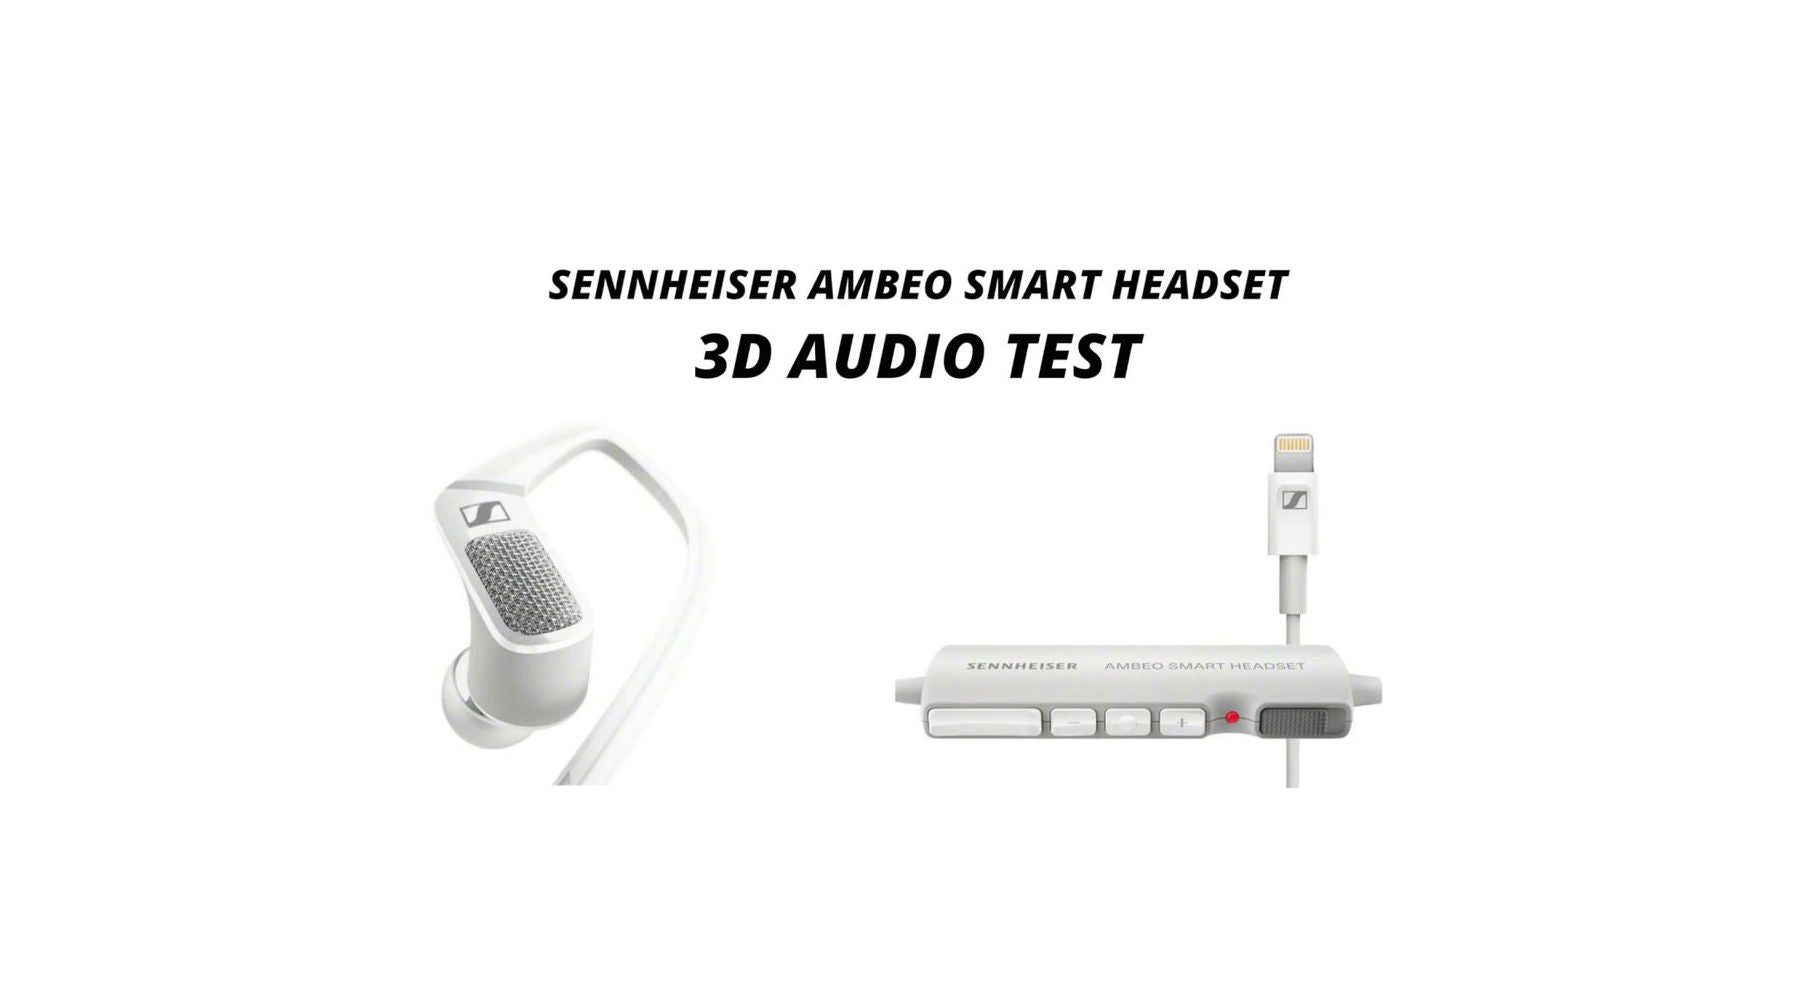 Sennheiser AMBEO smart headset- Capture your world in 3D video sound!